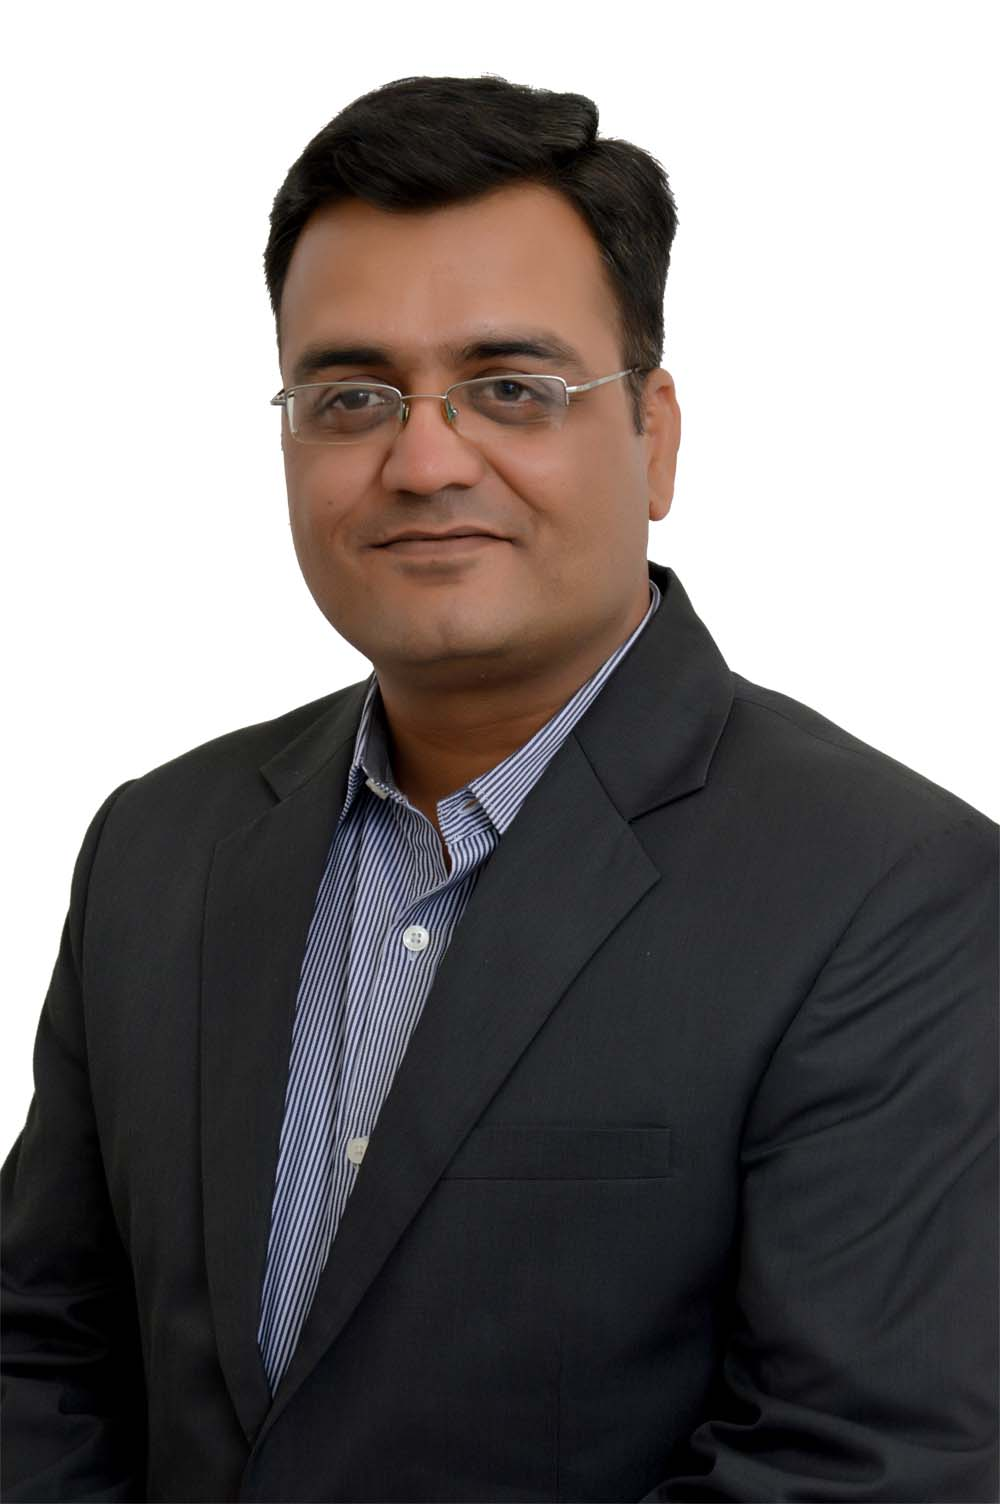 Mr. Sanjay Joshi, Country Manager, Edimax India and Sub Continent